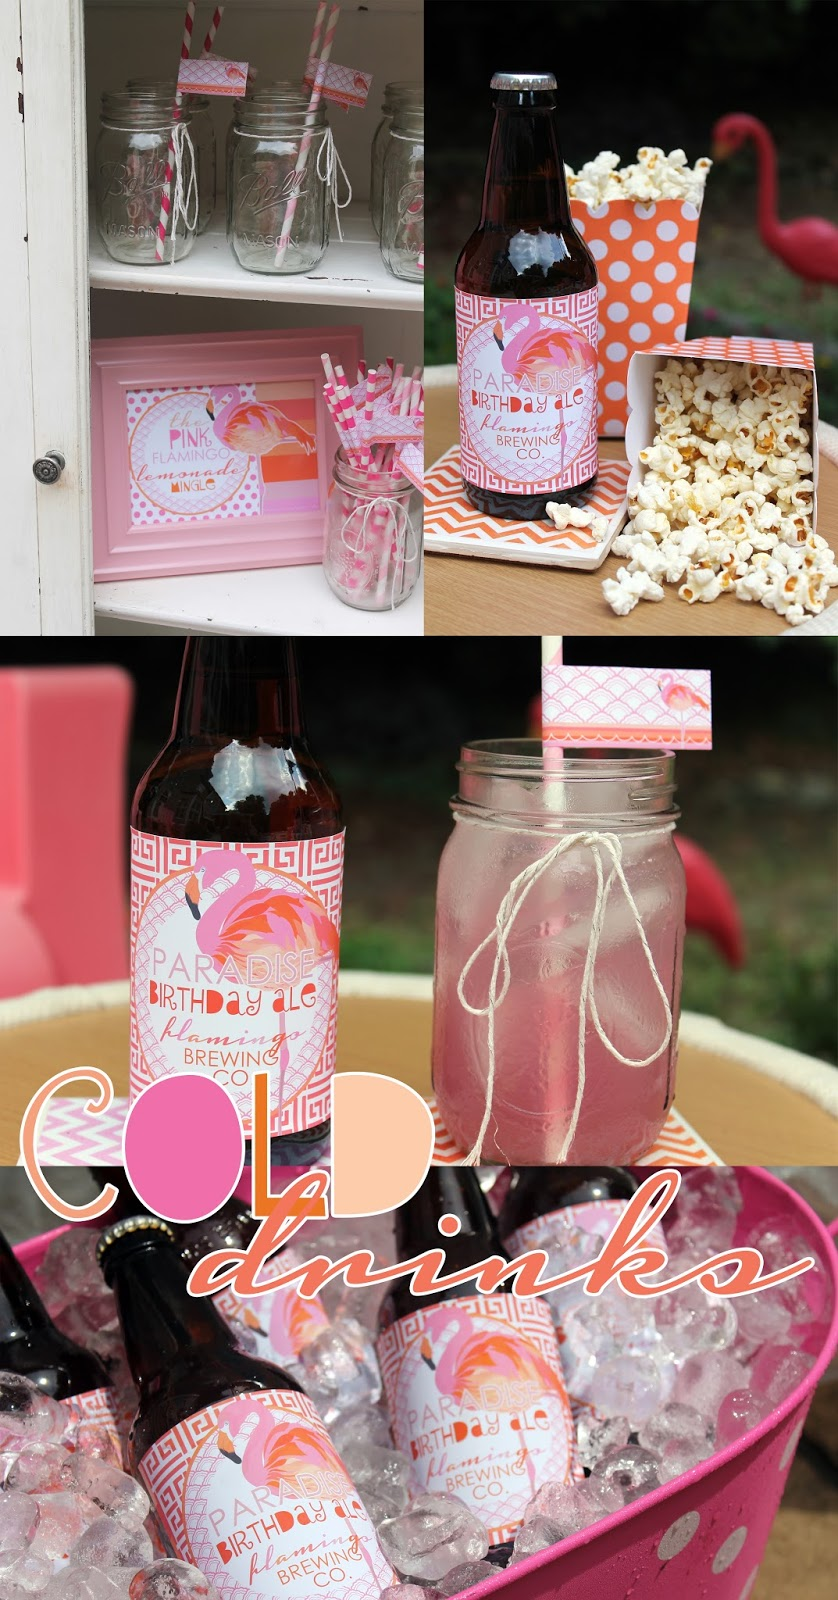 http://www.partyboxdesign.com/item_1672/Flamingo-Pool-Party-Beer-Label.htm